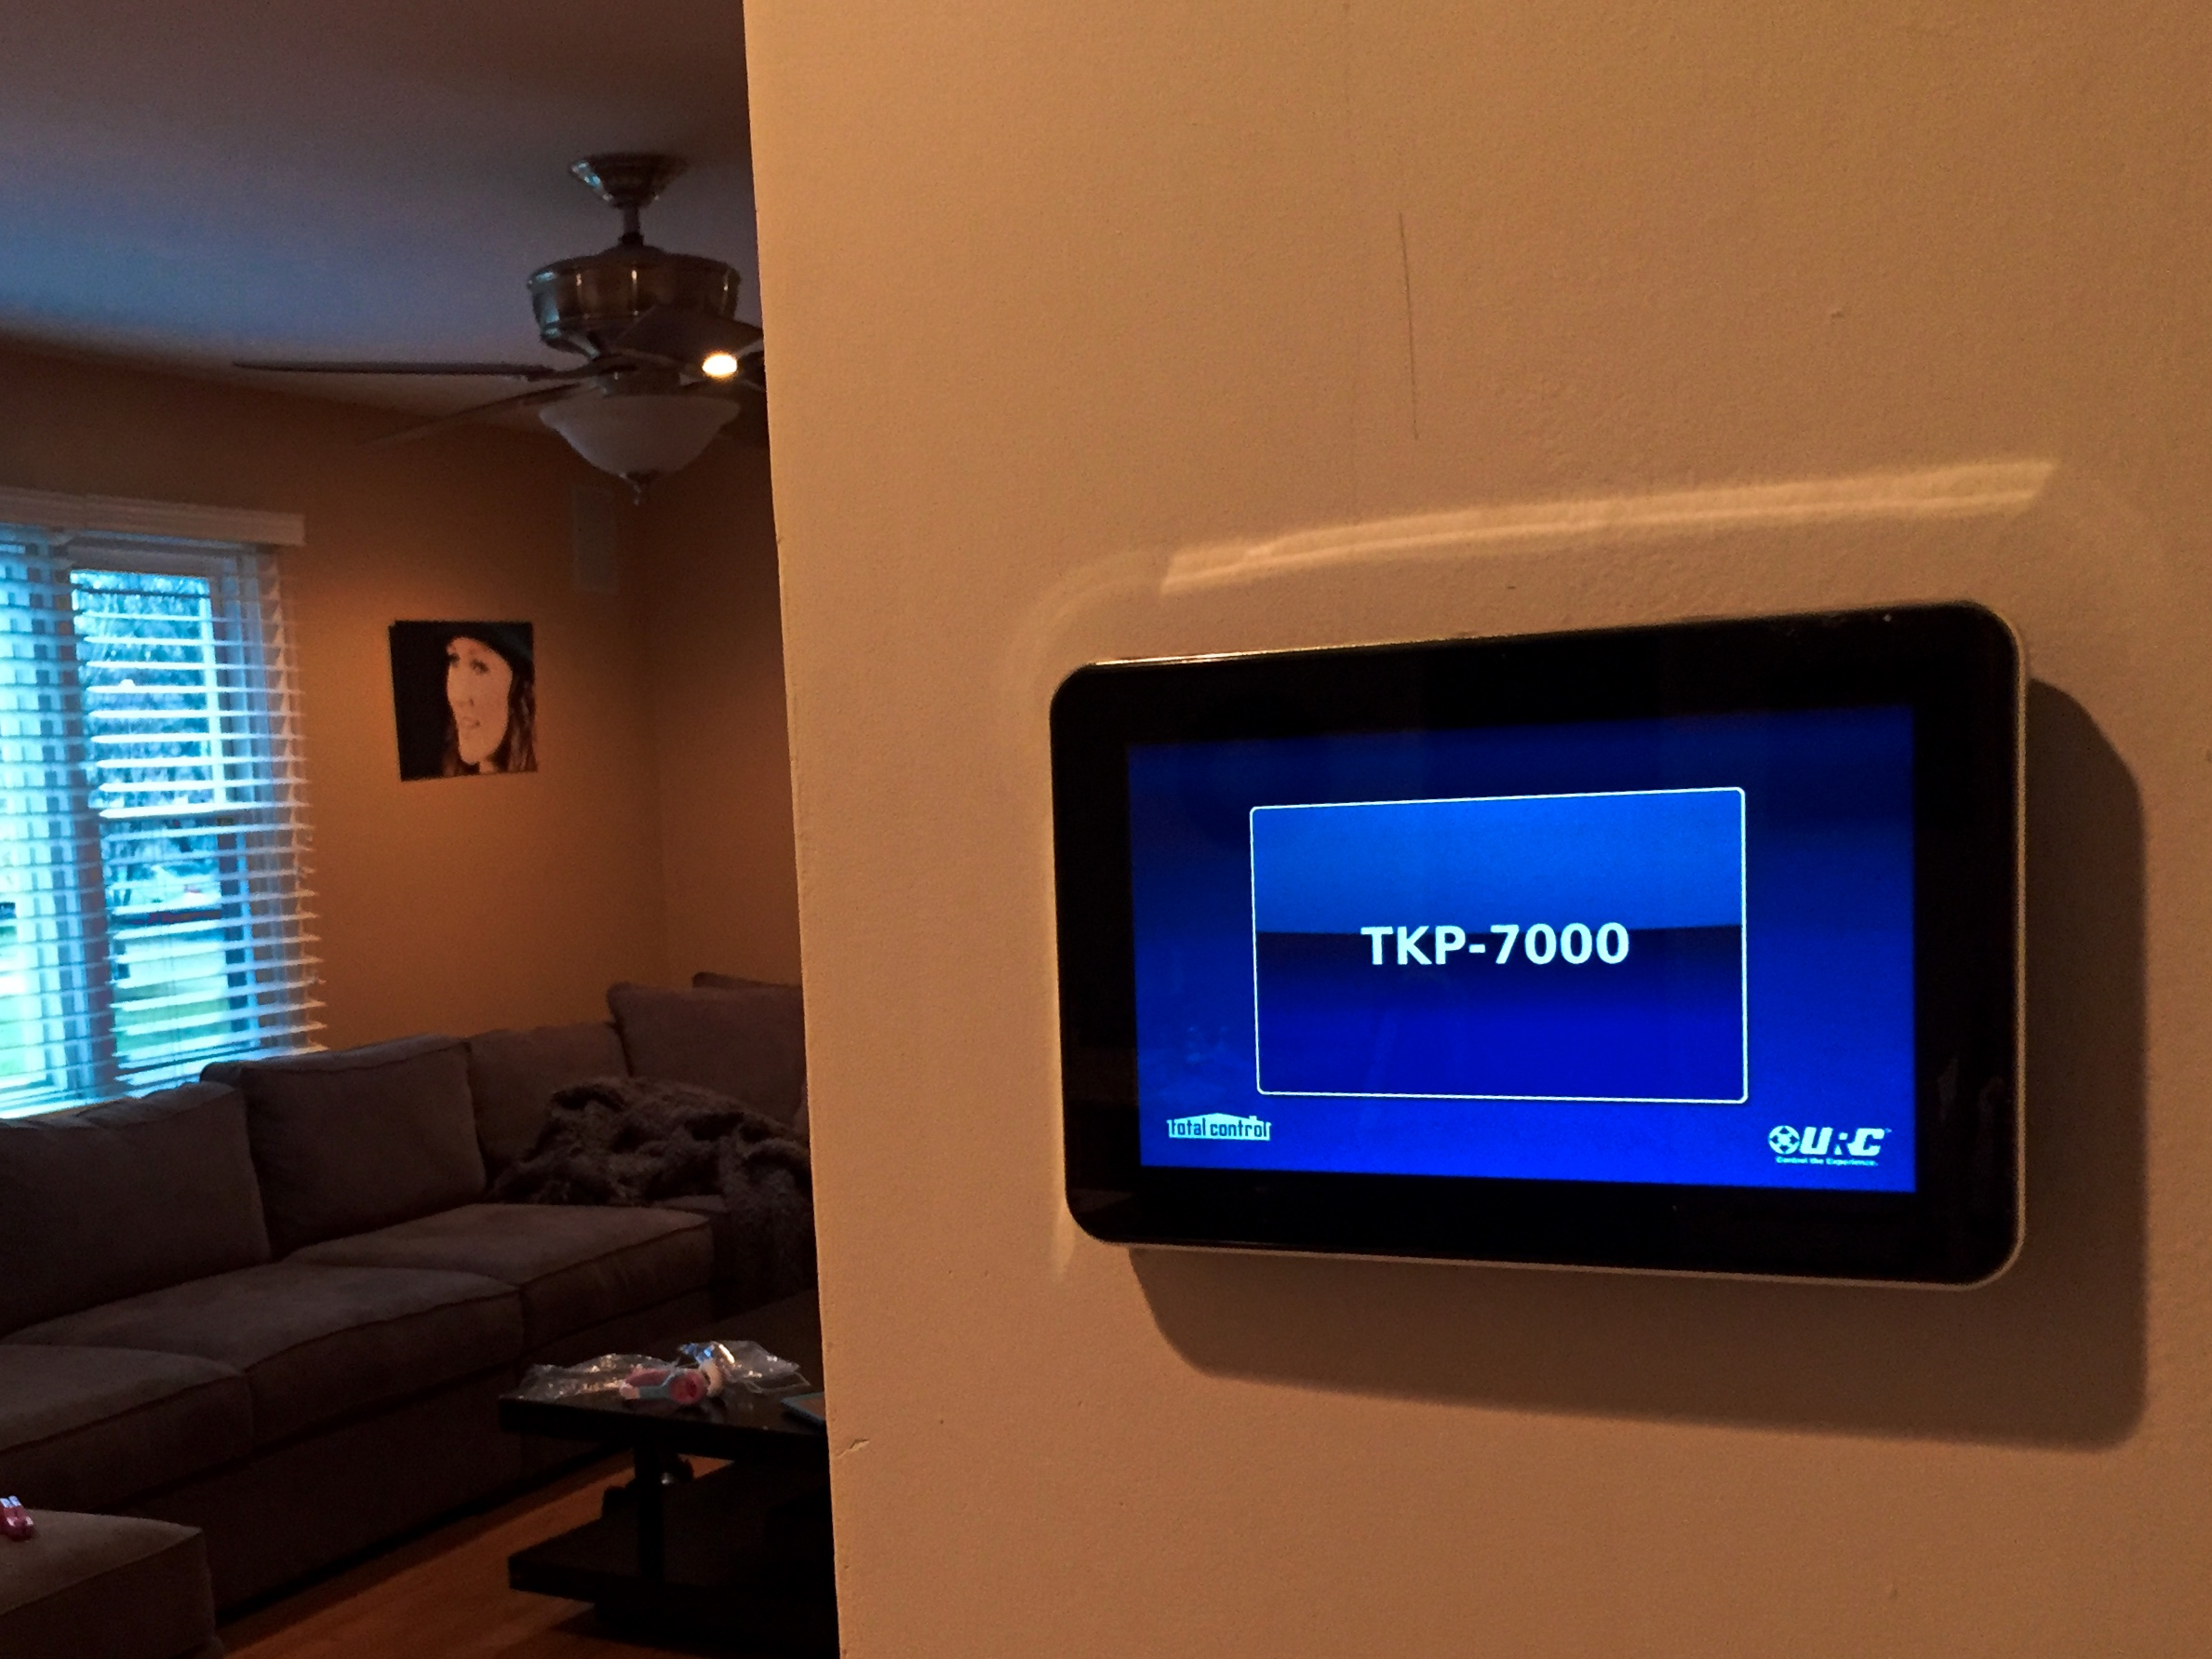 URC TKP 7000 smart home technologies